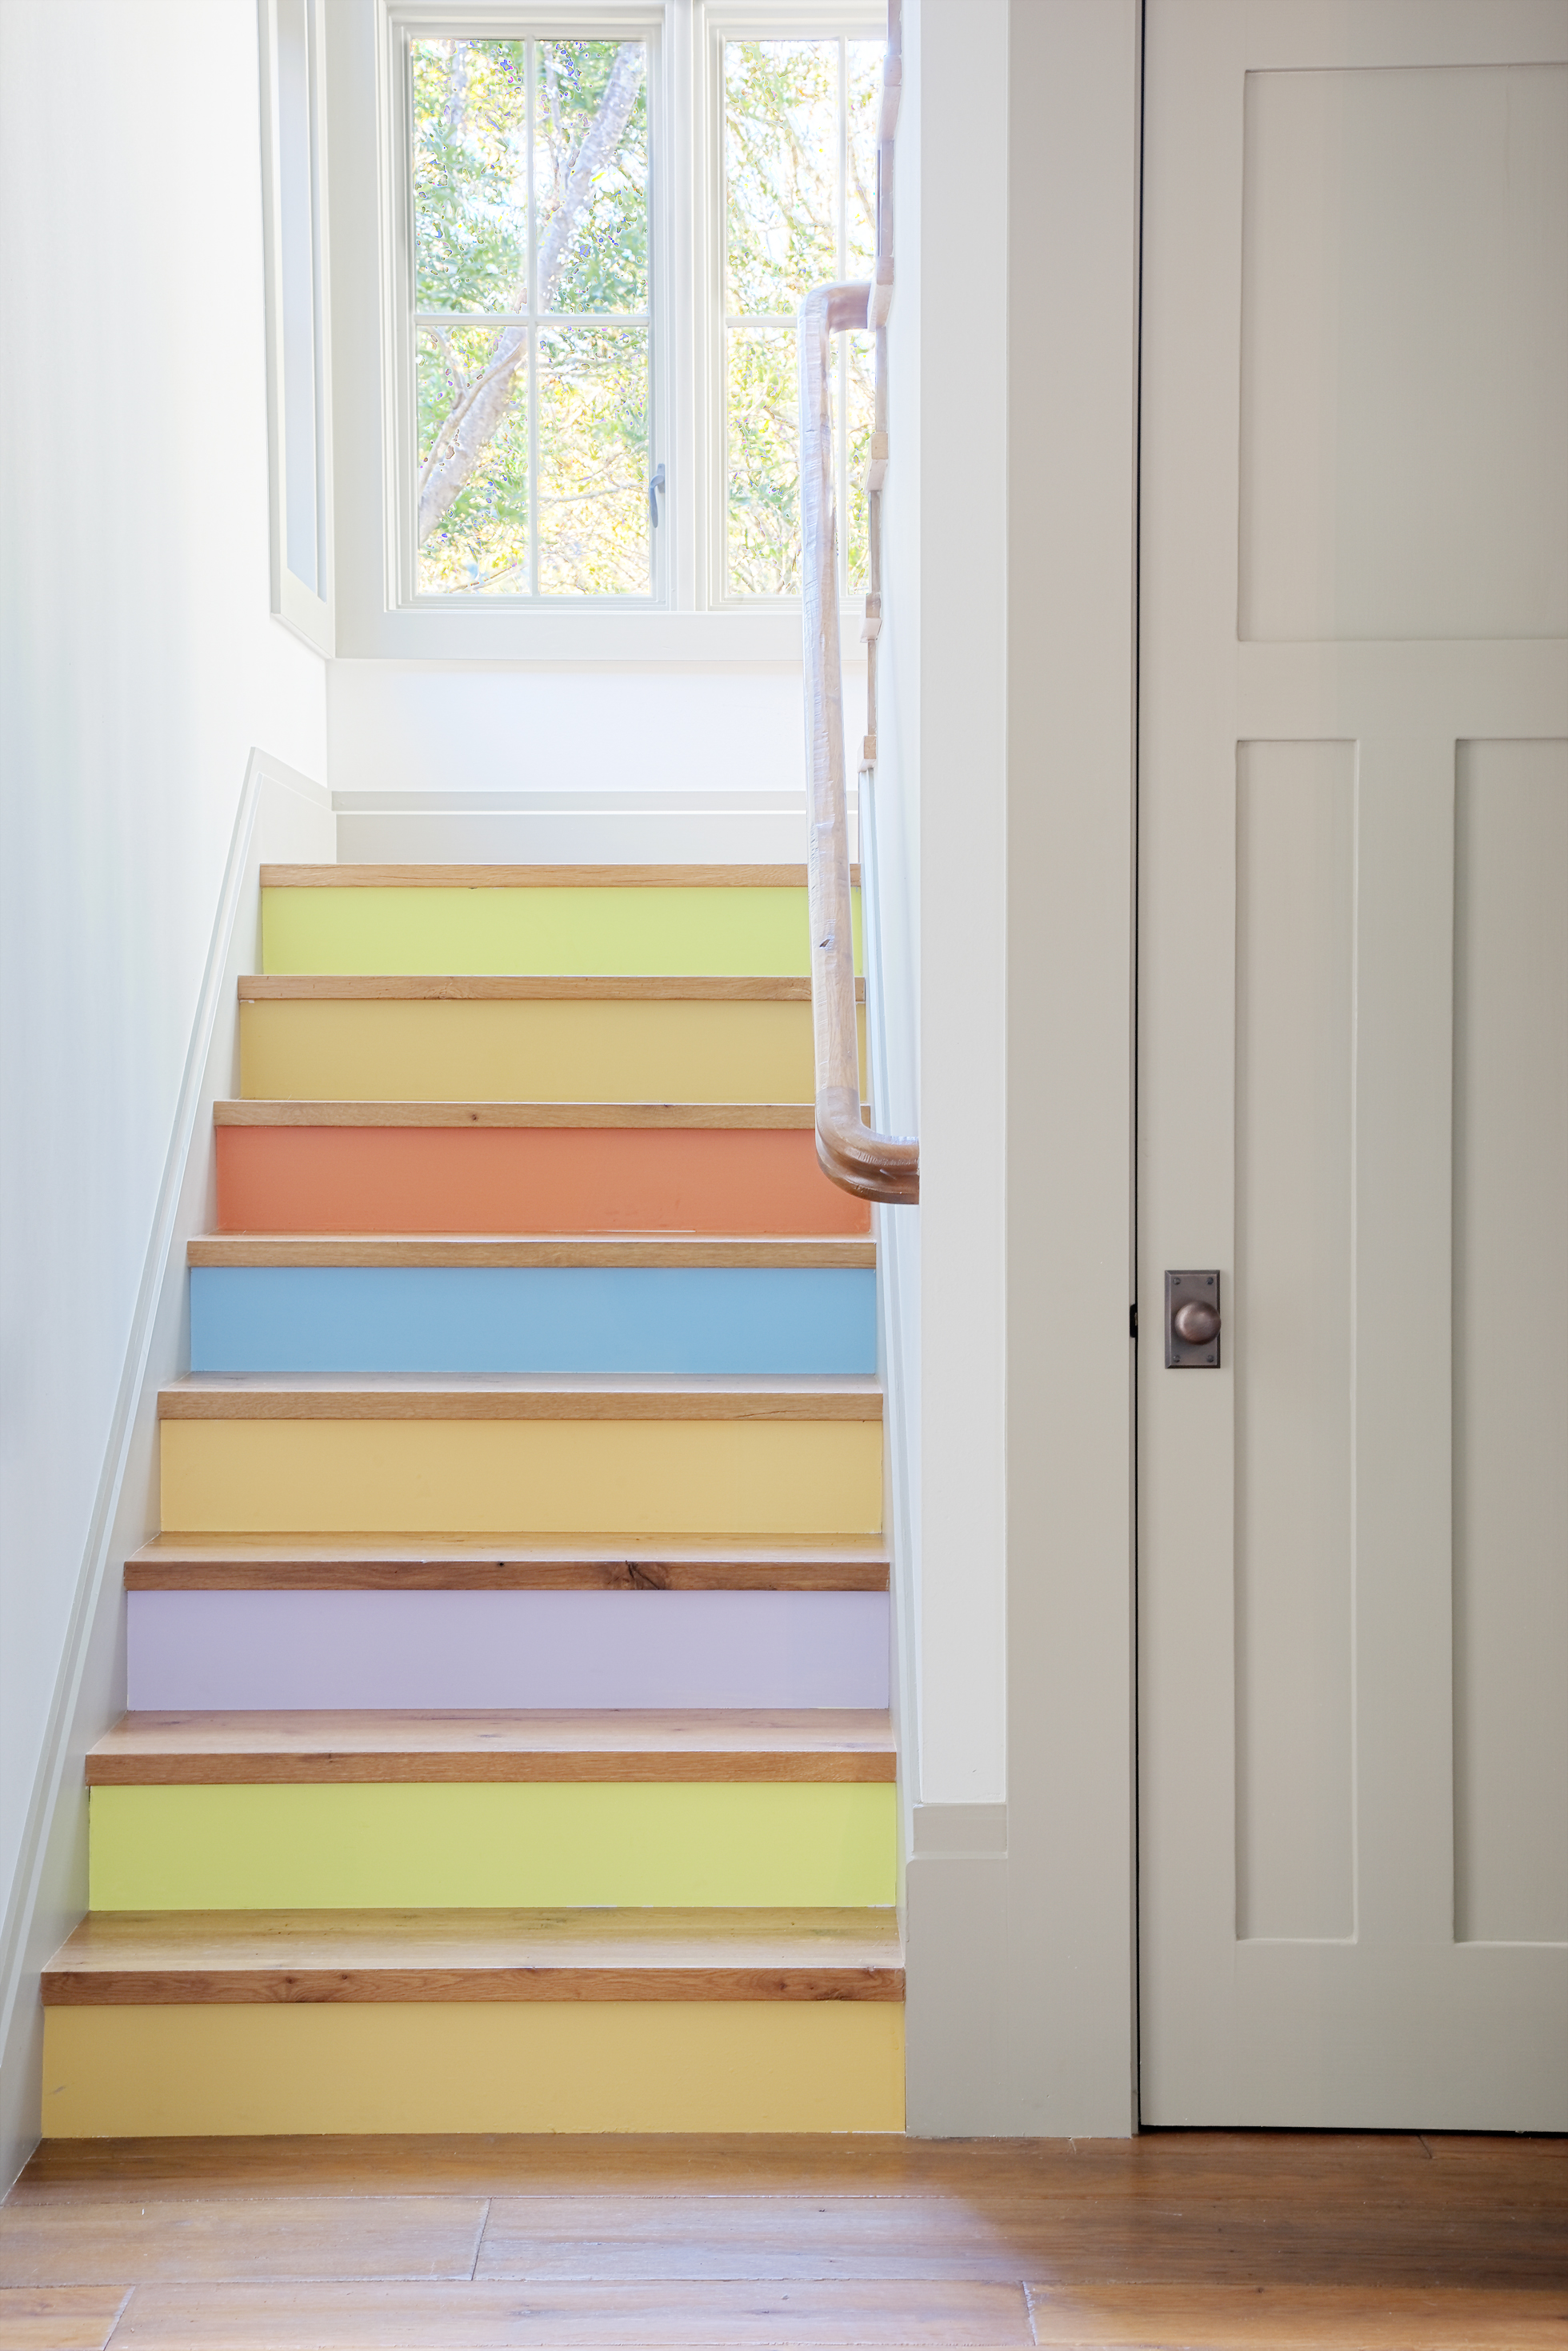 Pastel-painted rainbow stairs